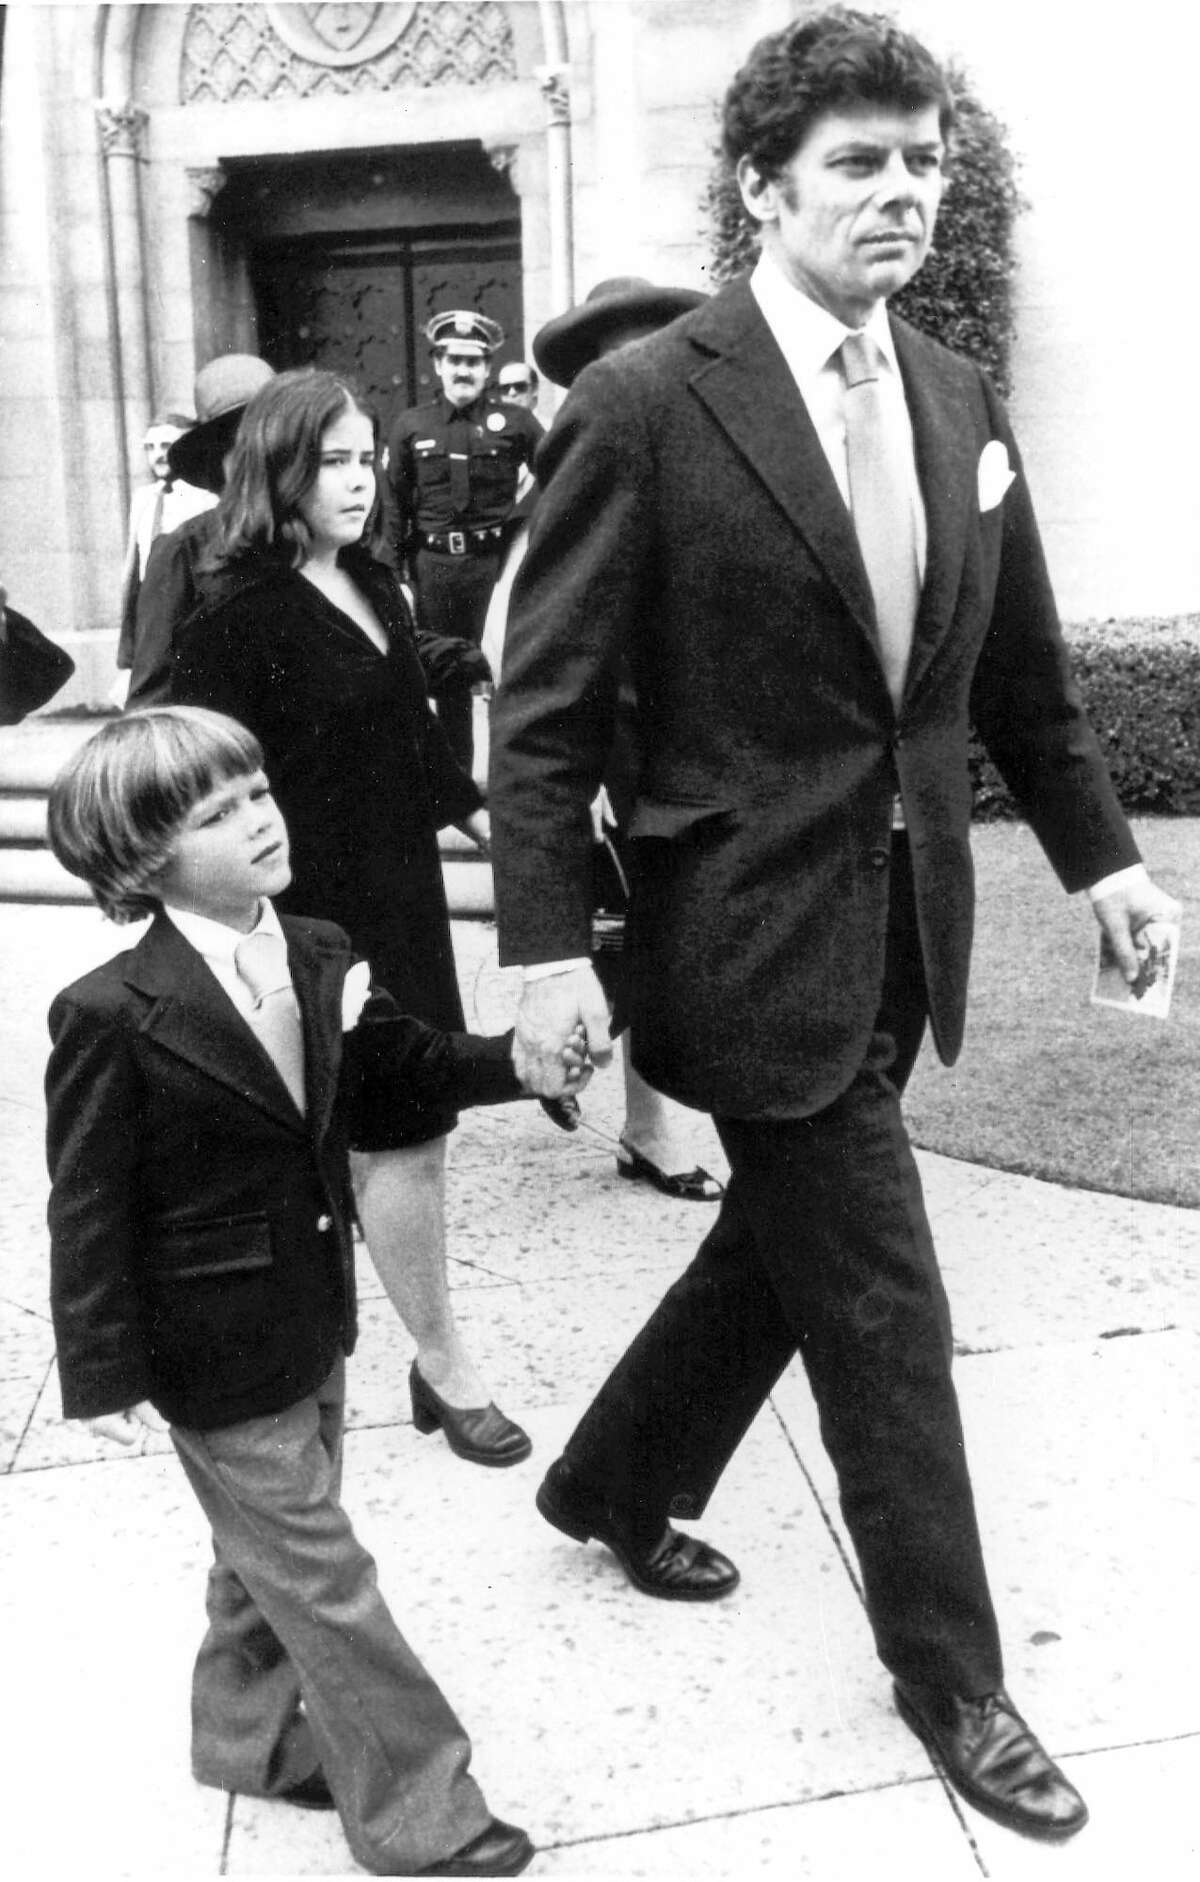 FILE - In this June 10, 1976 file photo, Gordon Getty with his son Andrew leaves the Wilshire United Methodist church after memorial services for J. Paul Getty, in Los Angeles. A man has been found dead at the Hollywood Hills home of Andrew Getty, grandson of the late J. Paul Getty and heir to the Getty oil fortune - but they havenít confirmed that it is Getty. Los Angeles police Officer Jack Richter says officers went to the home shortly after 2:15 p.m. Tuesday, March 31, 2015, after a woman called to say someone in the house had died. (AP Photo/File)